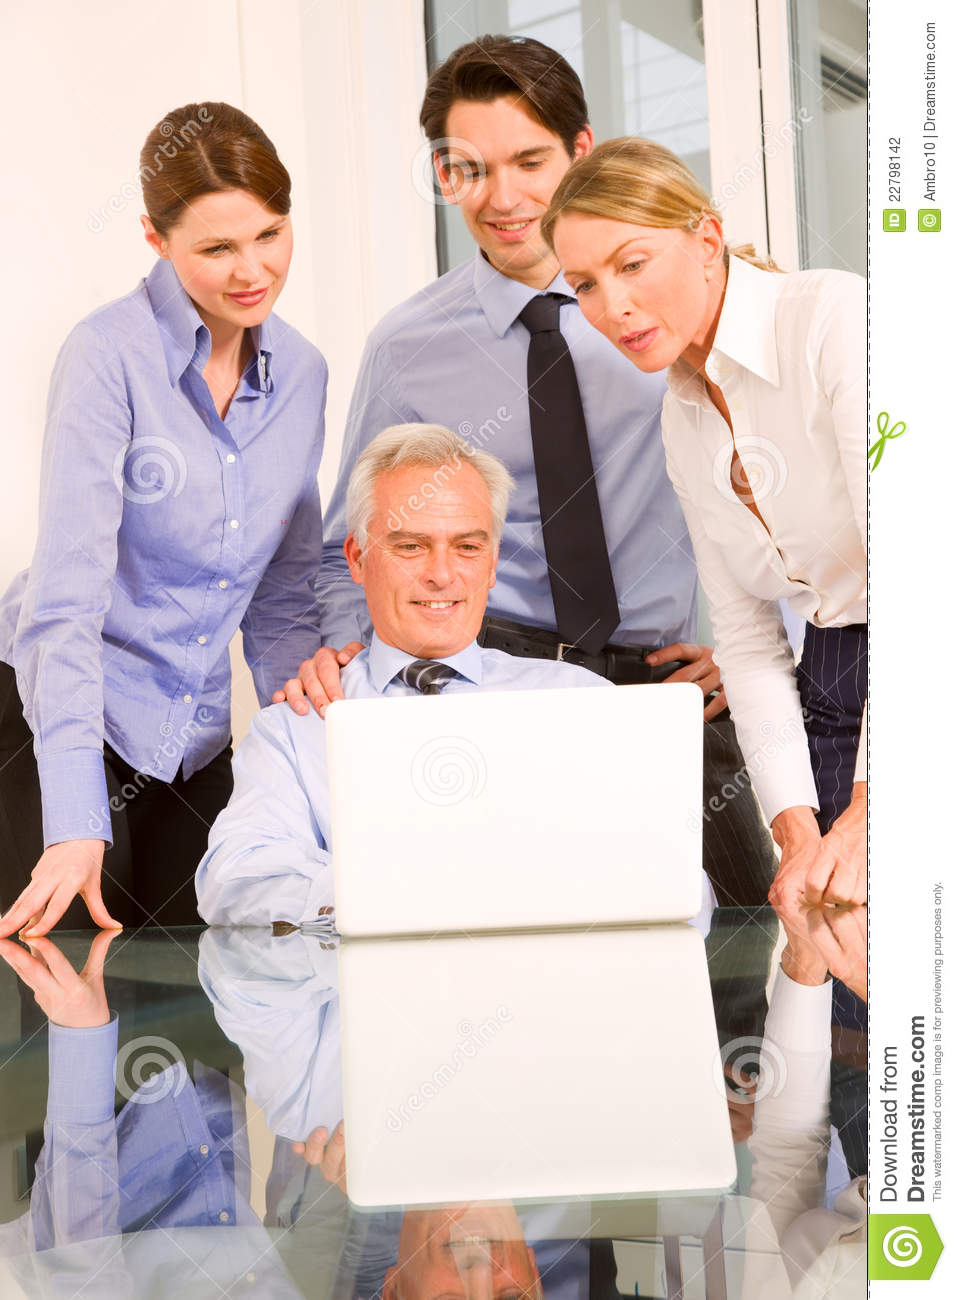 Business people during a working meeting